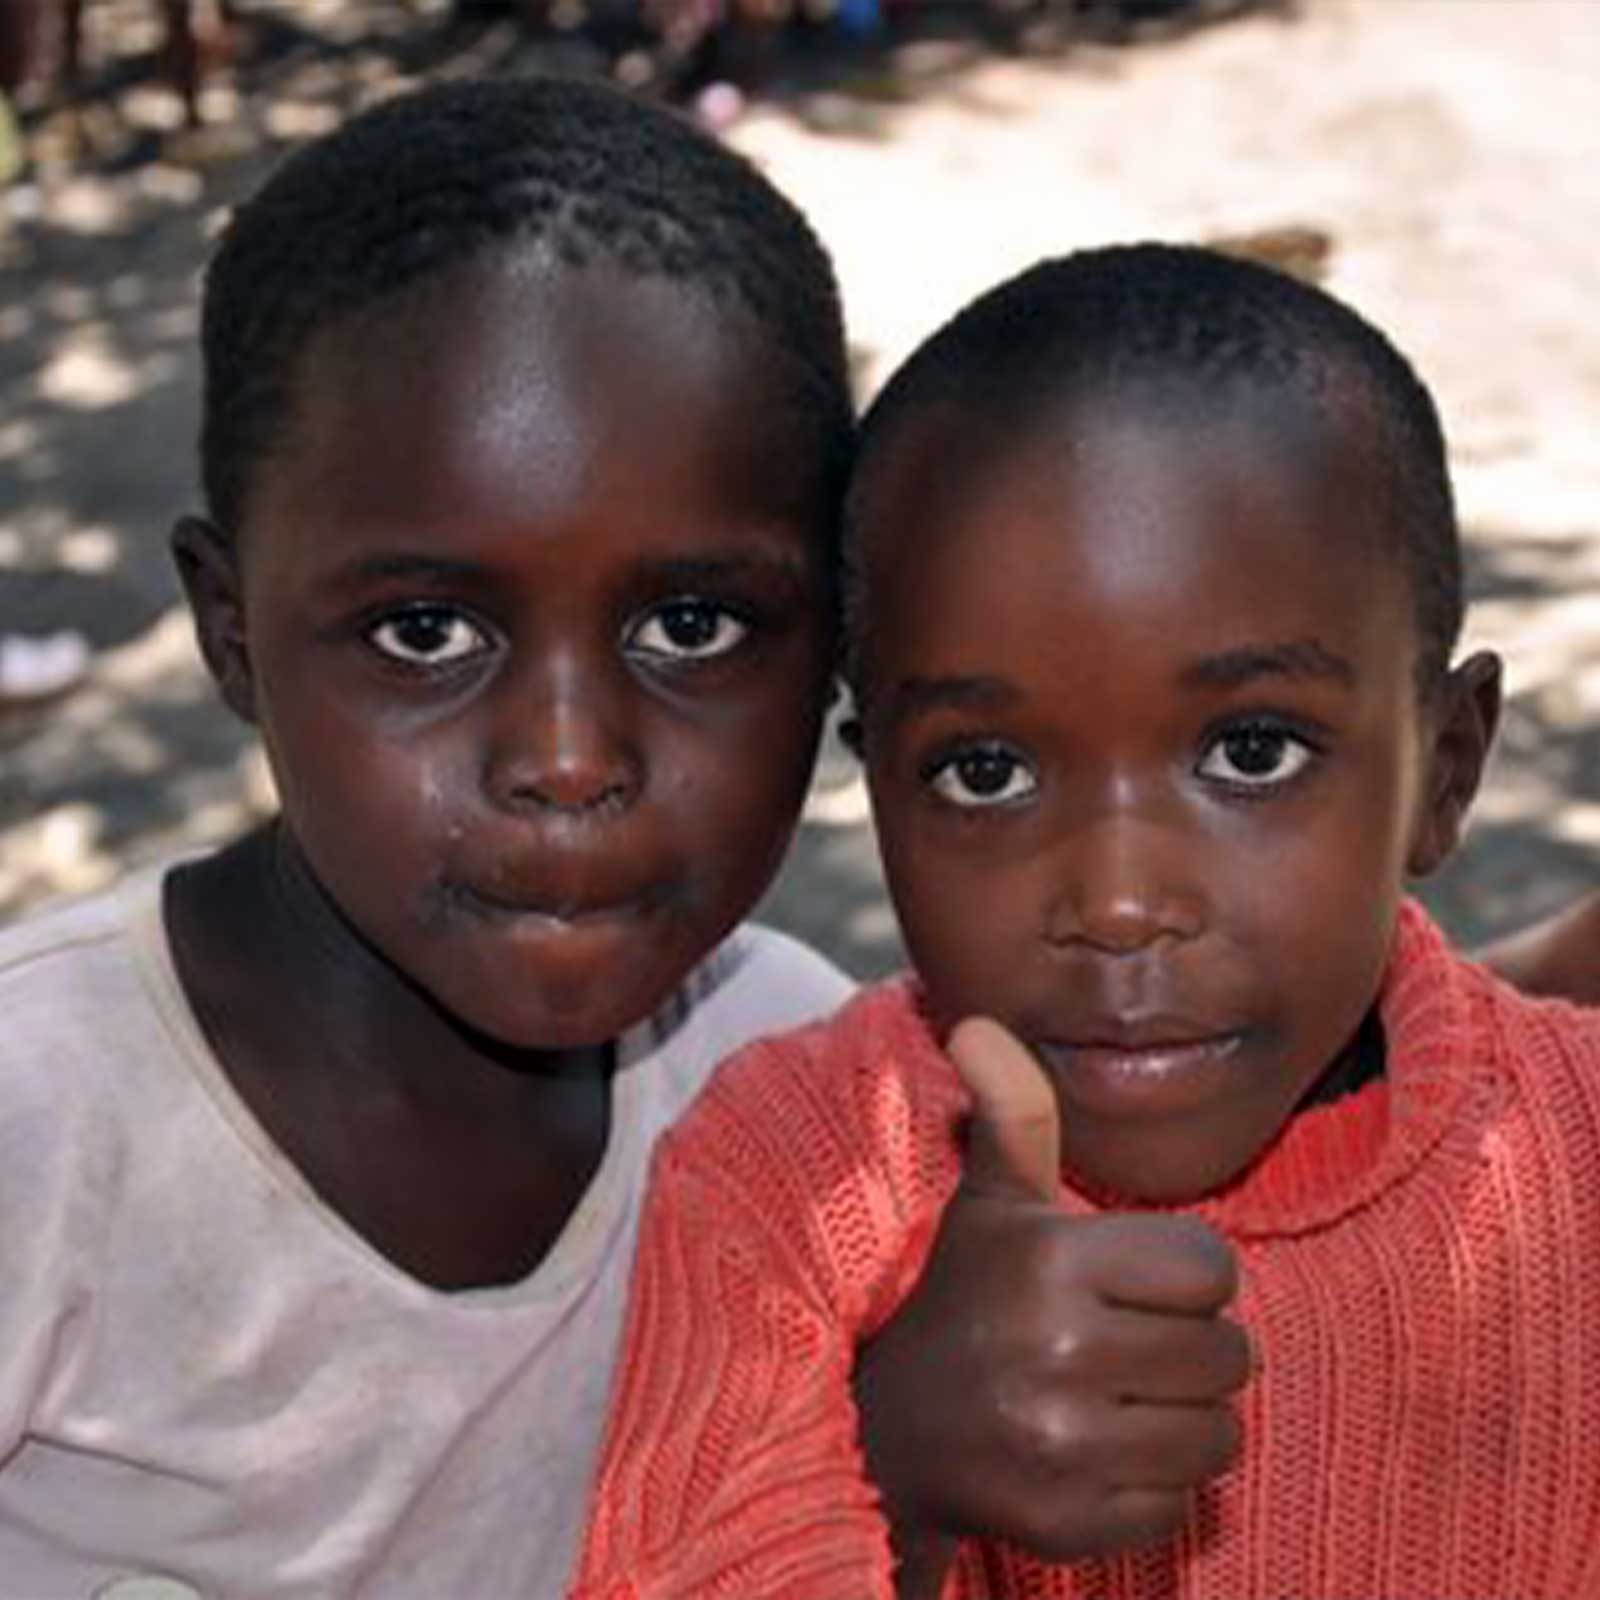 photo: young children with thumbs up